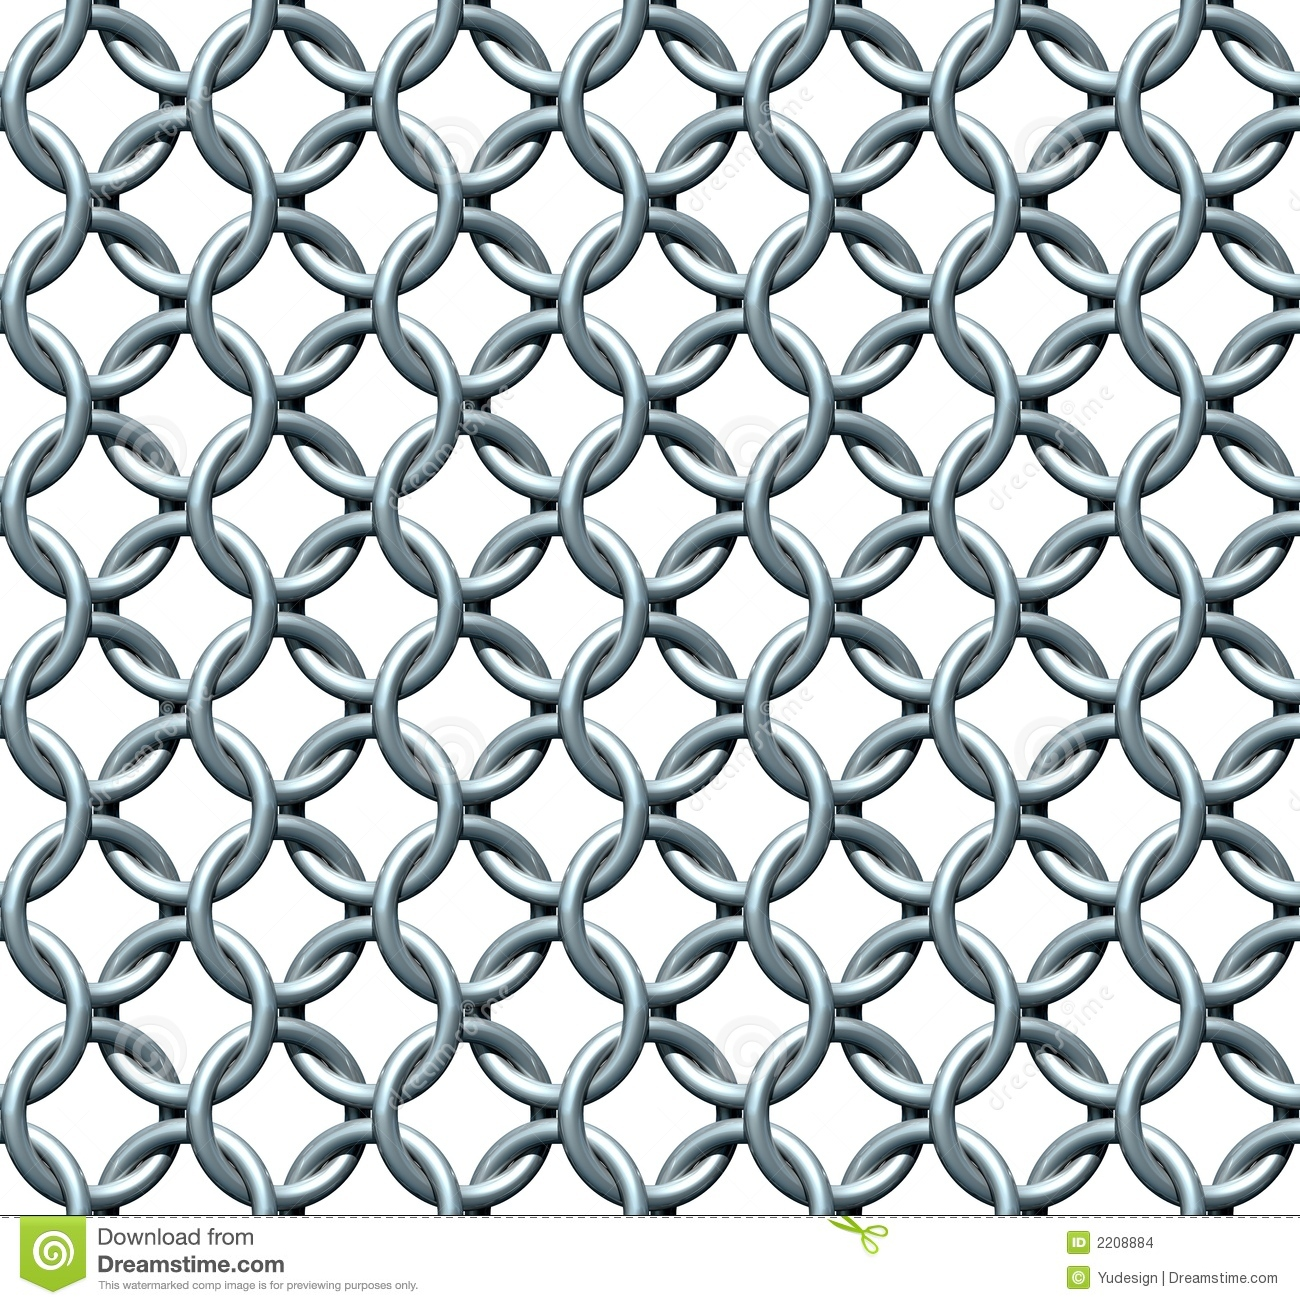 3D rendered seamless chainmail texture (ortho rendering).